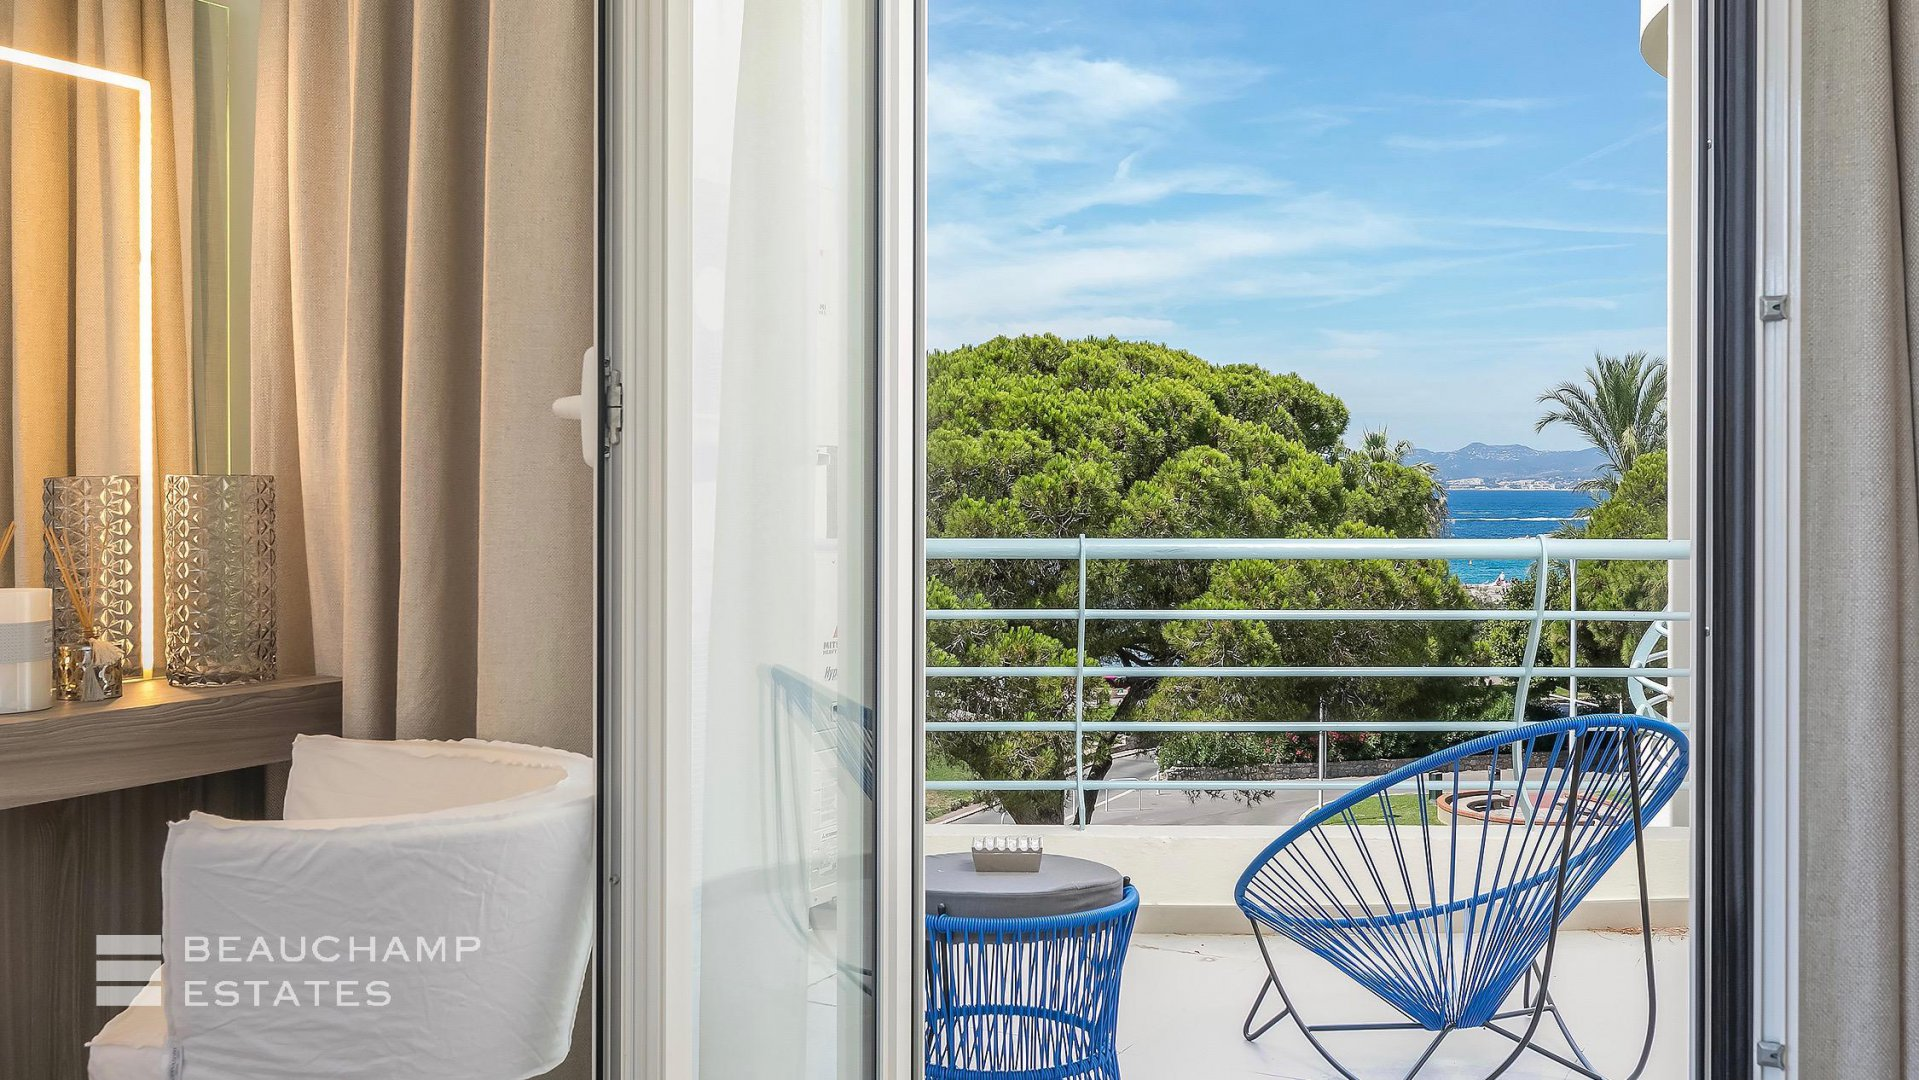 Fantastic 3 Bedrooms Apartment for Sale with Views of the Croisette